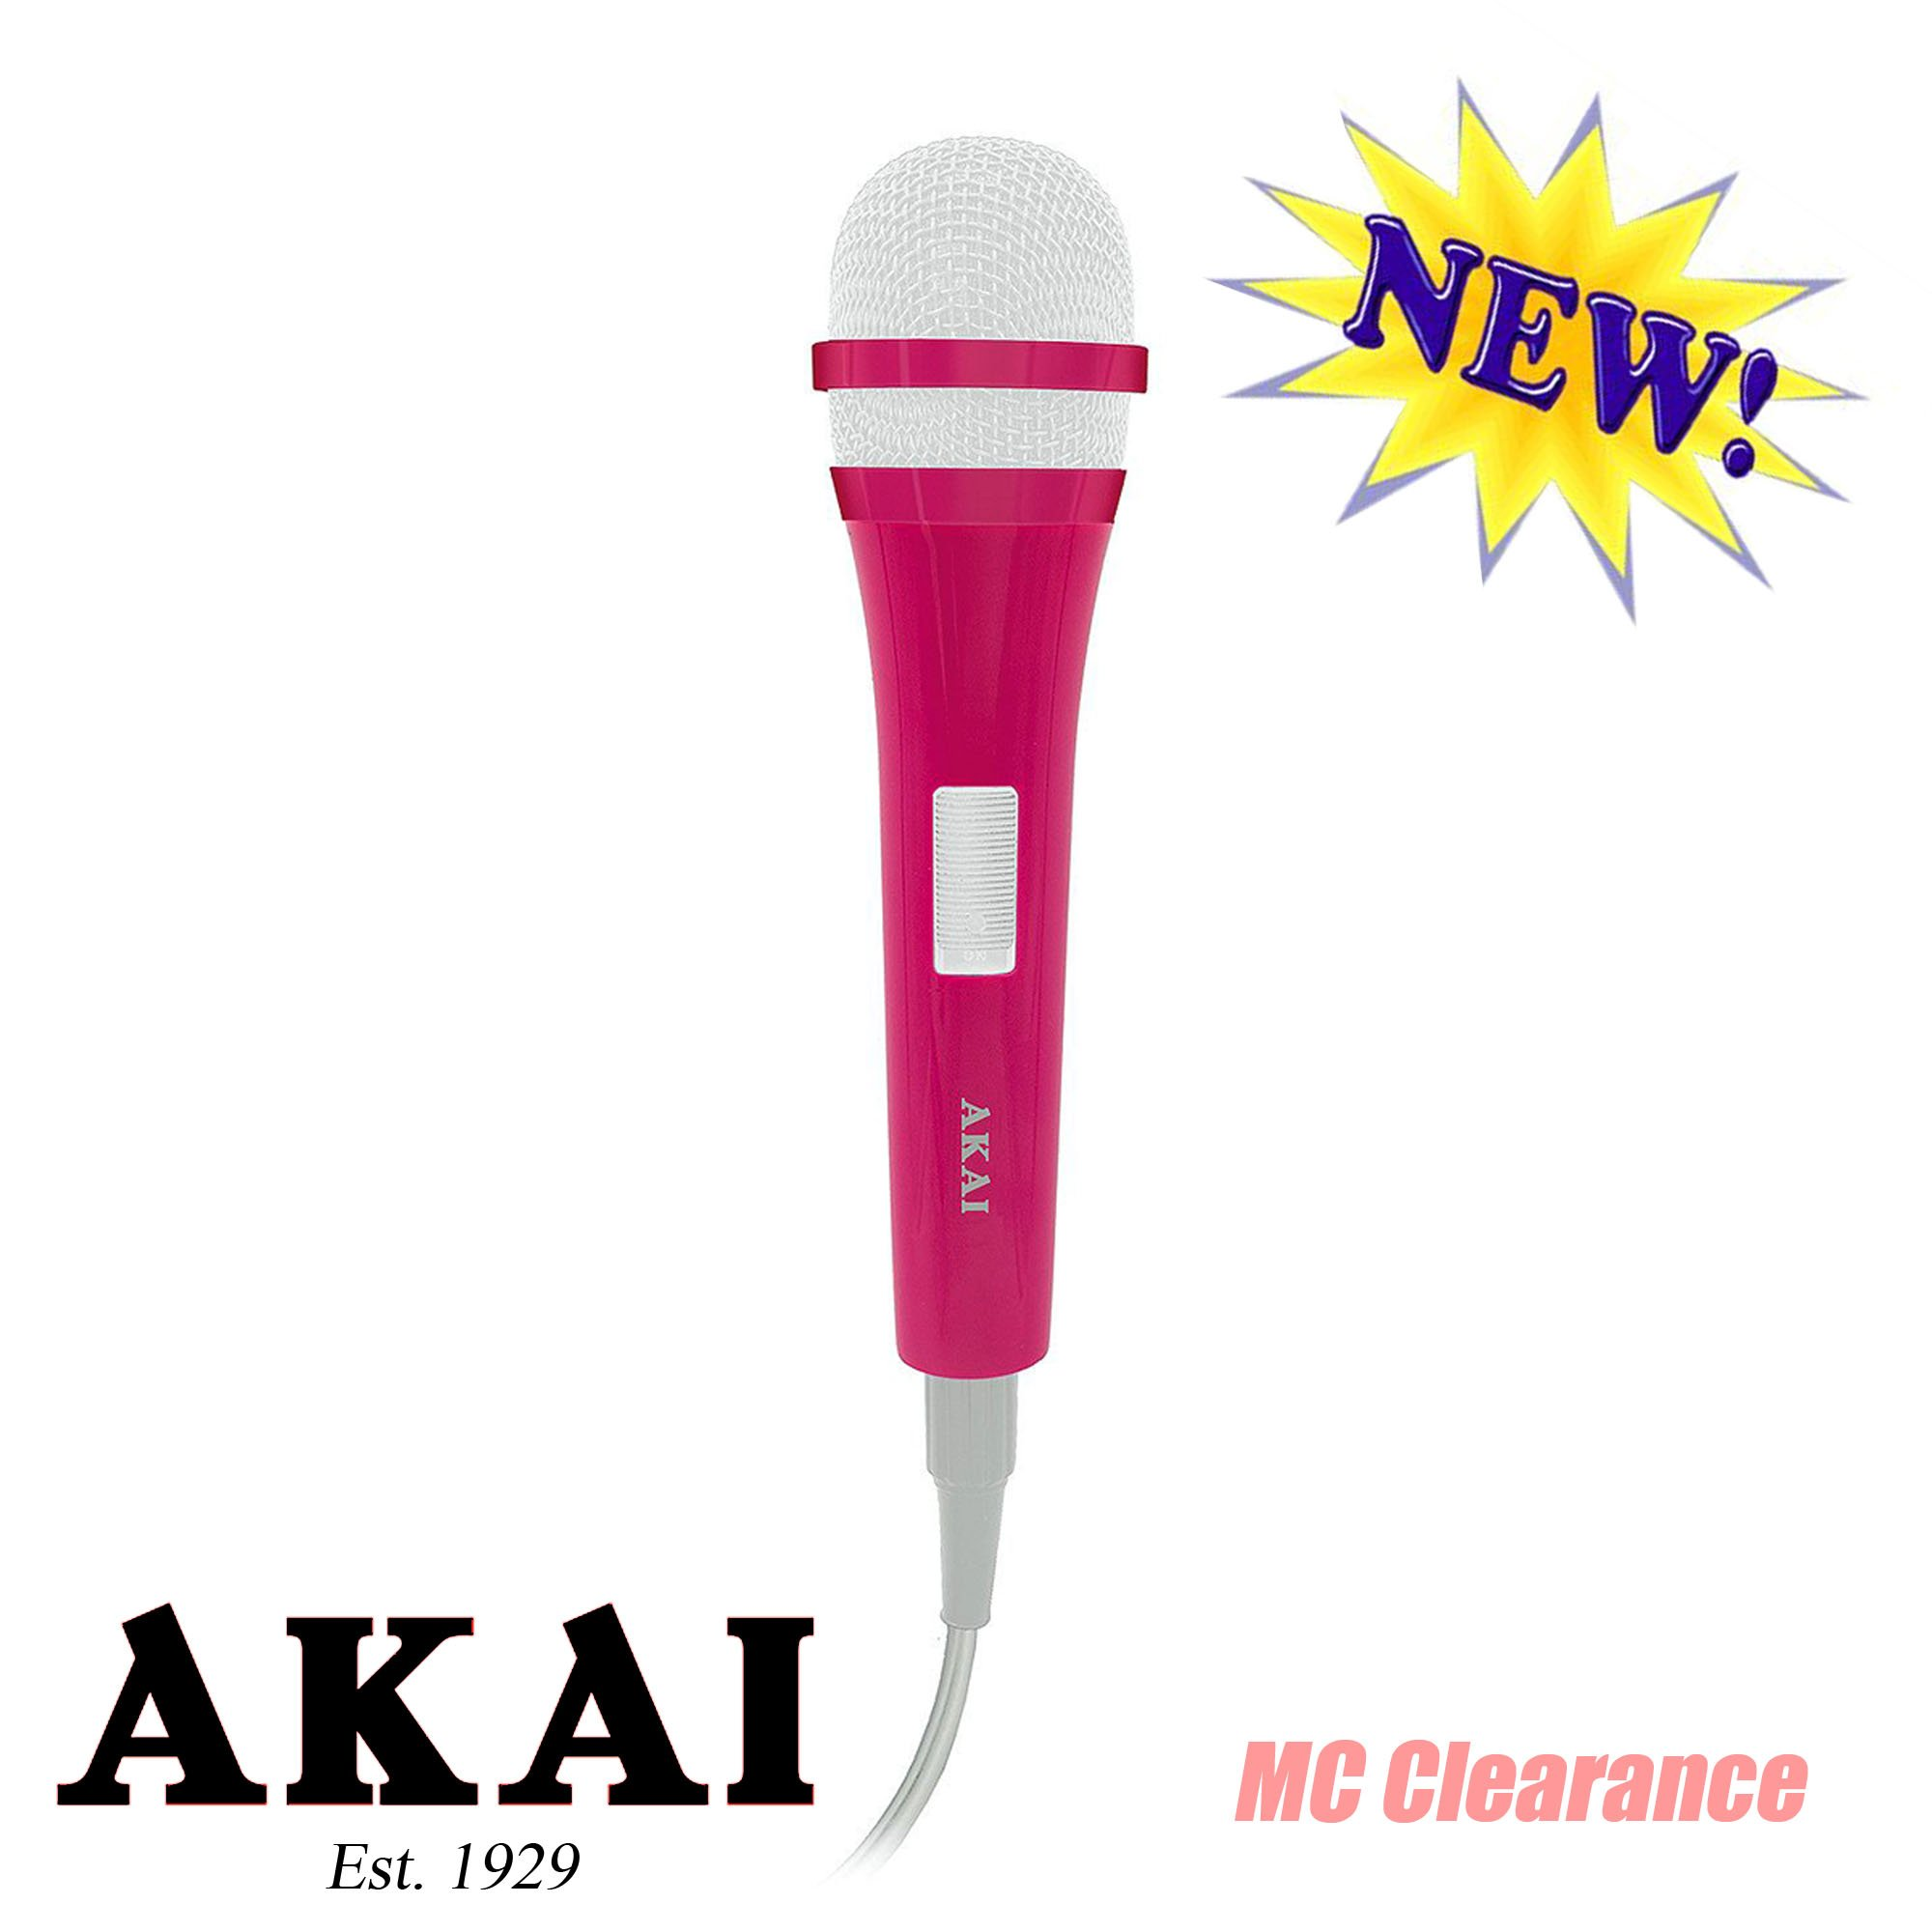 Akai Dynamic Microphone Unidirectional KS721XP with 10 Ft. Cord Pink color